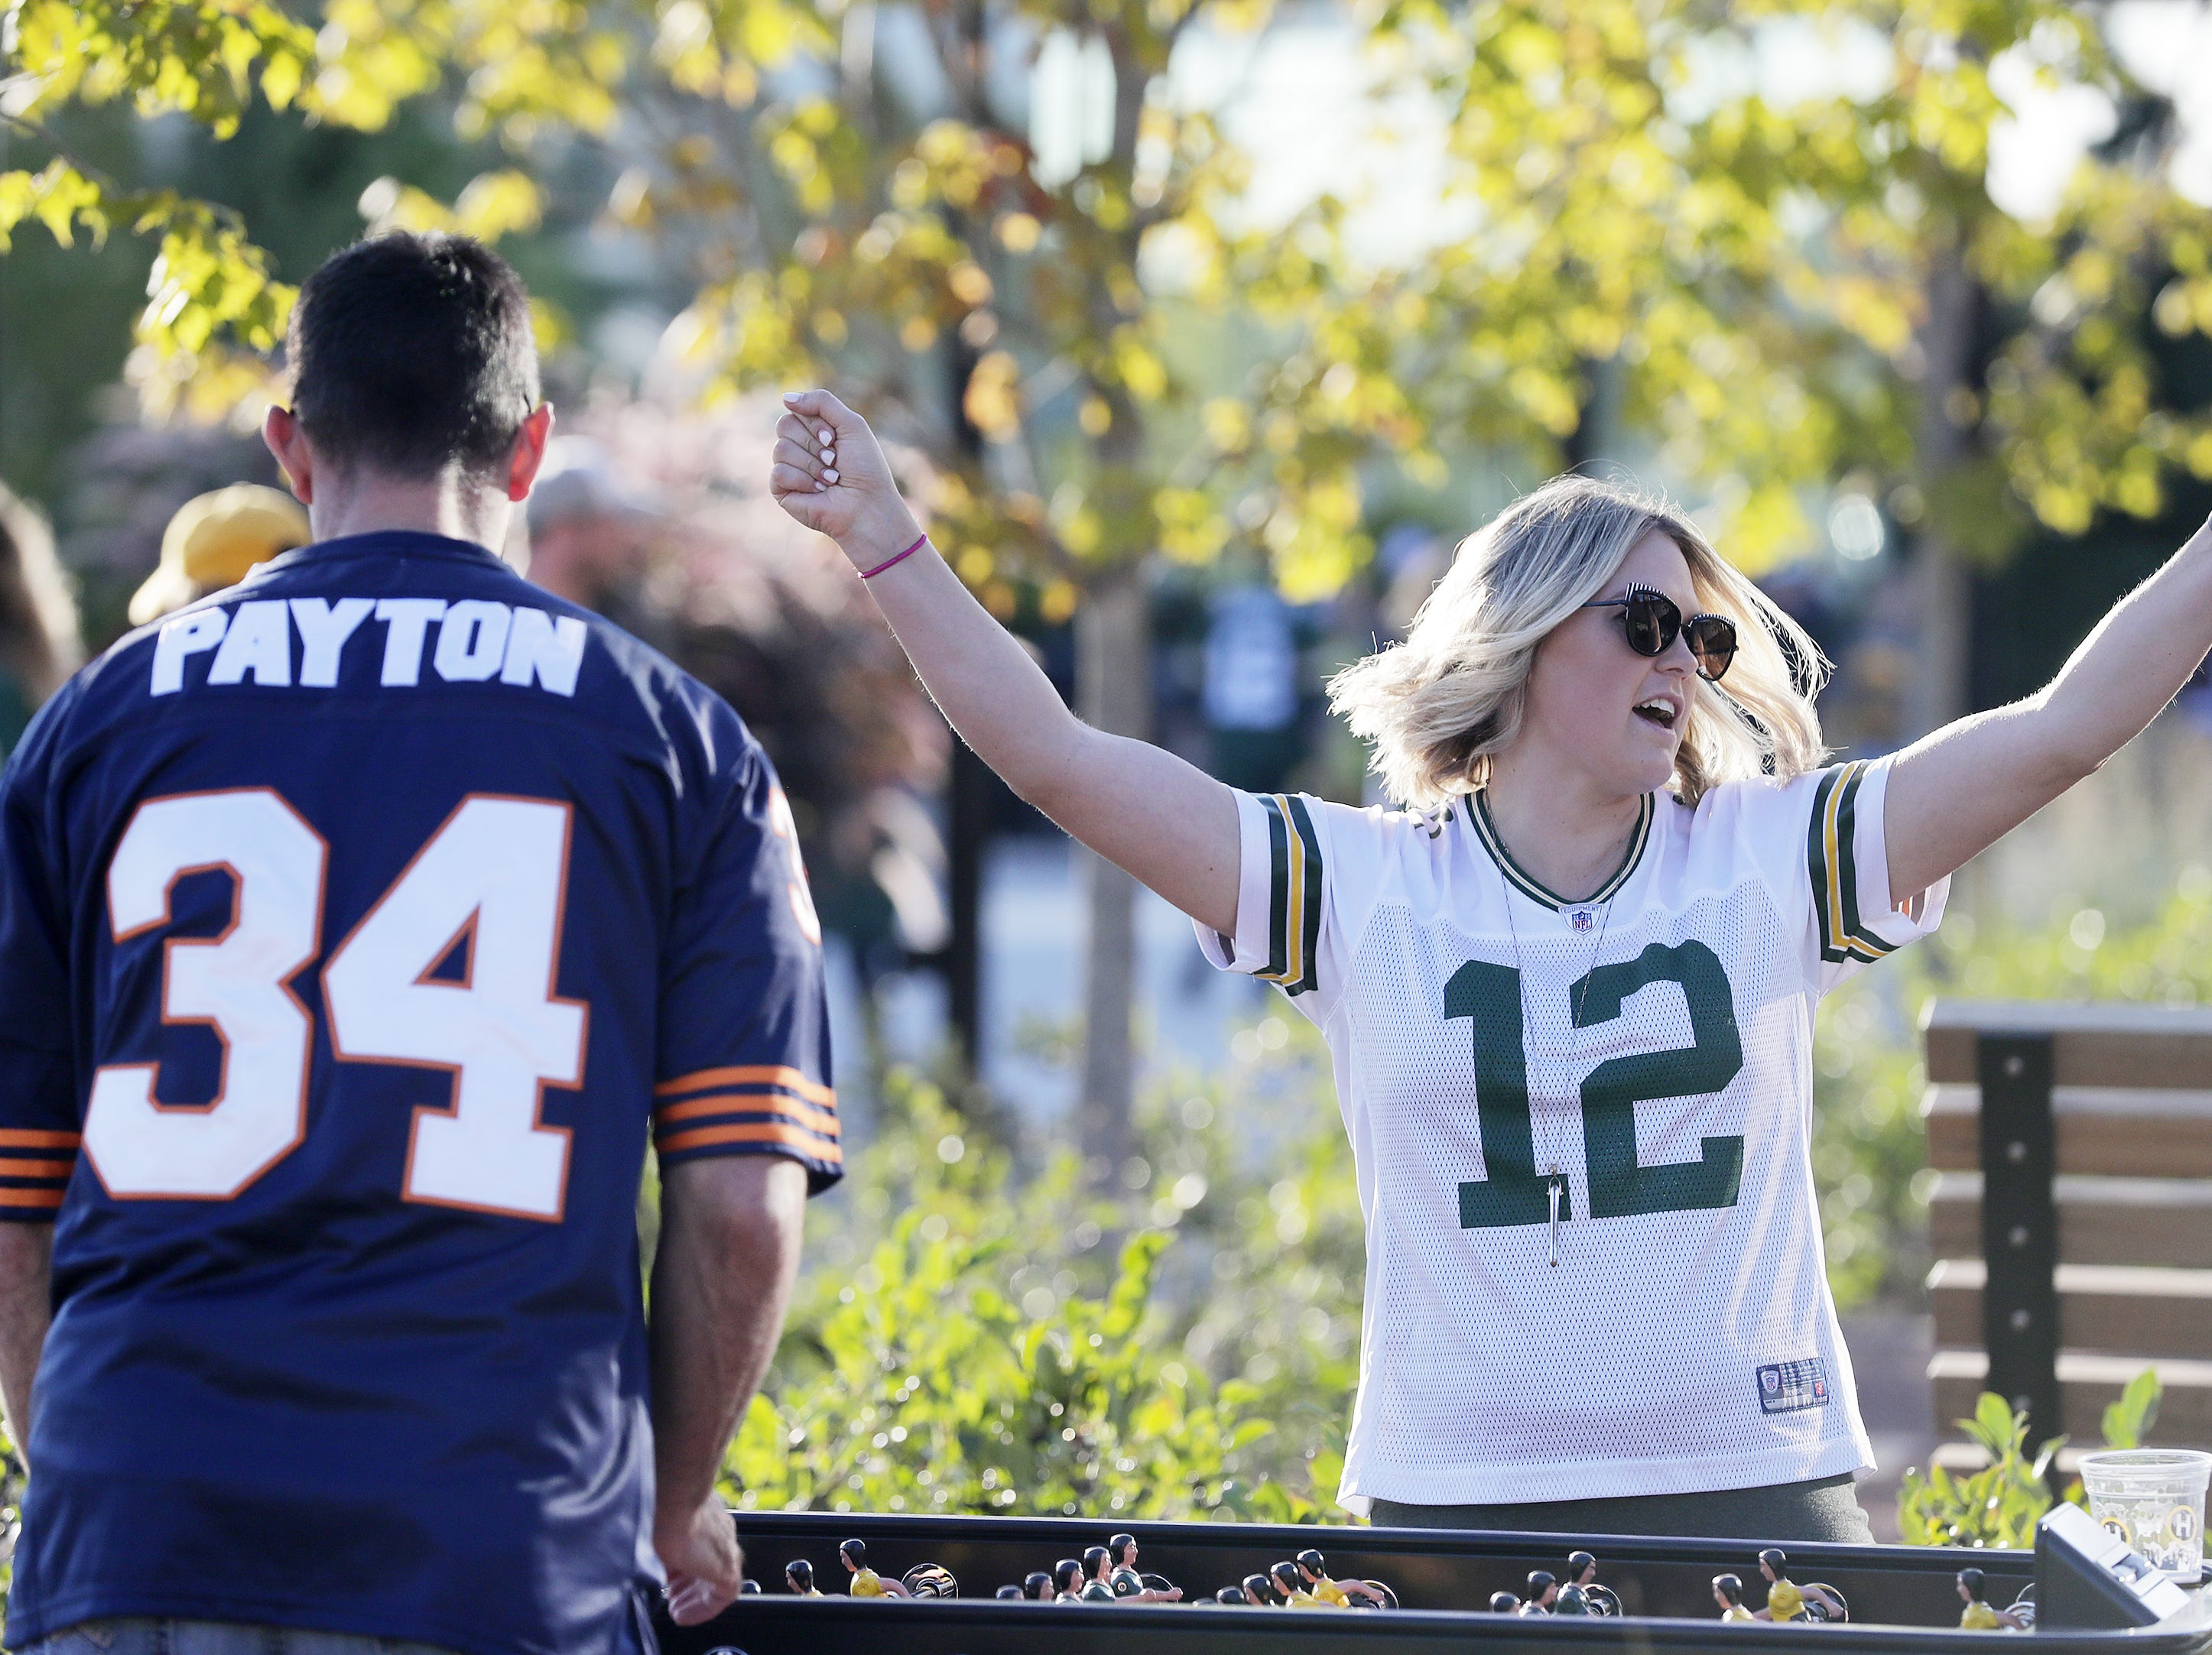 Brandon and Lindsay Kleve of Iowa play foosball before the Packers vs Bears game at Lambeau Field on Sunday, September 9, 2018 in Green Bay, Wis.